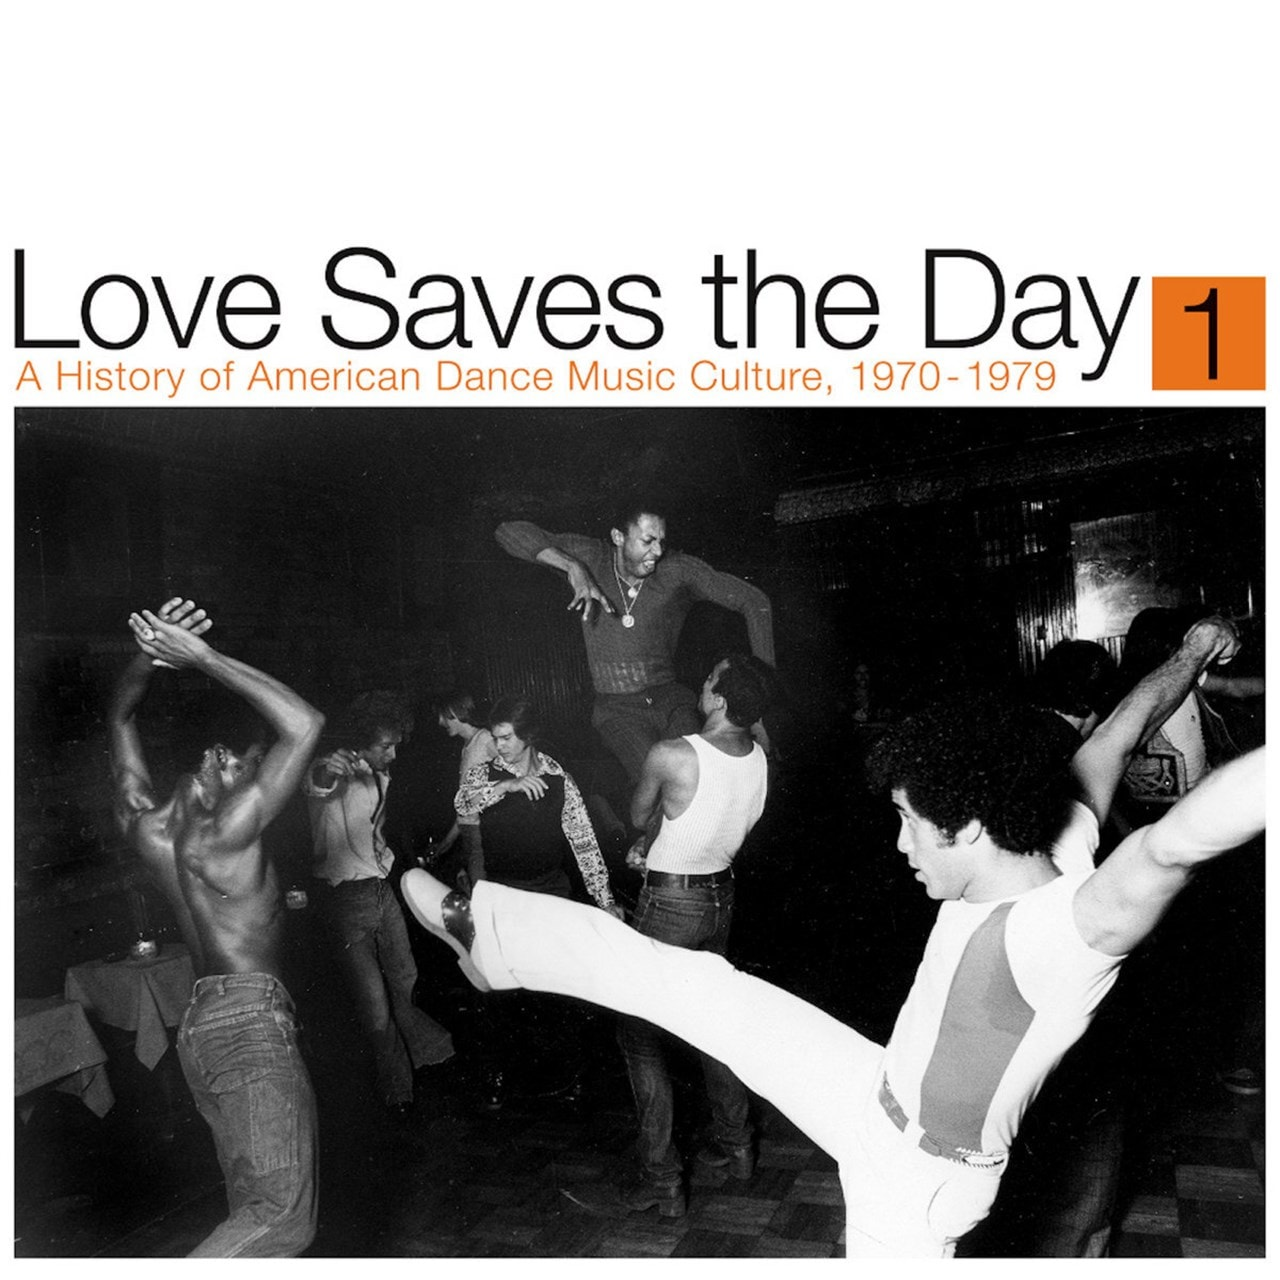 Love Saves the Day: A History of American Dance Music Culture 1970 - 1979 - Volume 1 - 1